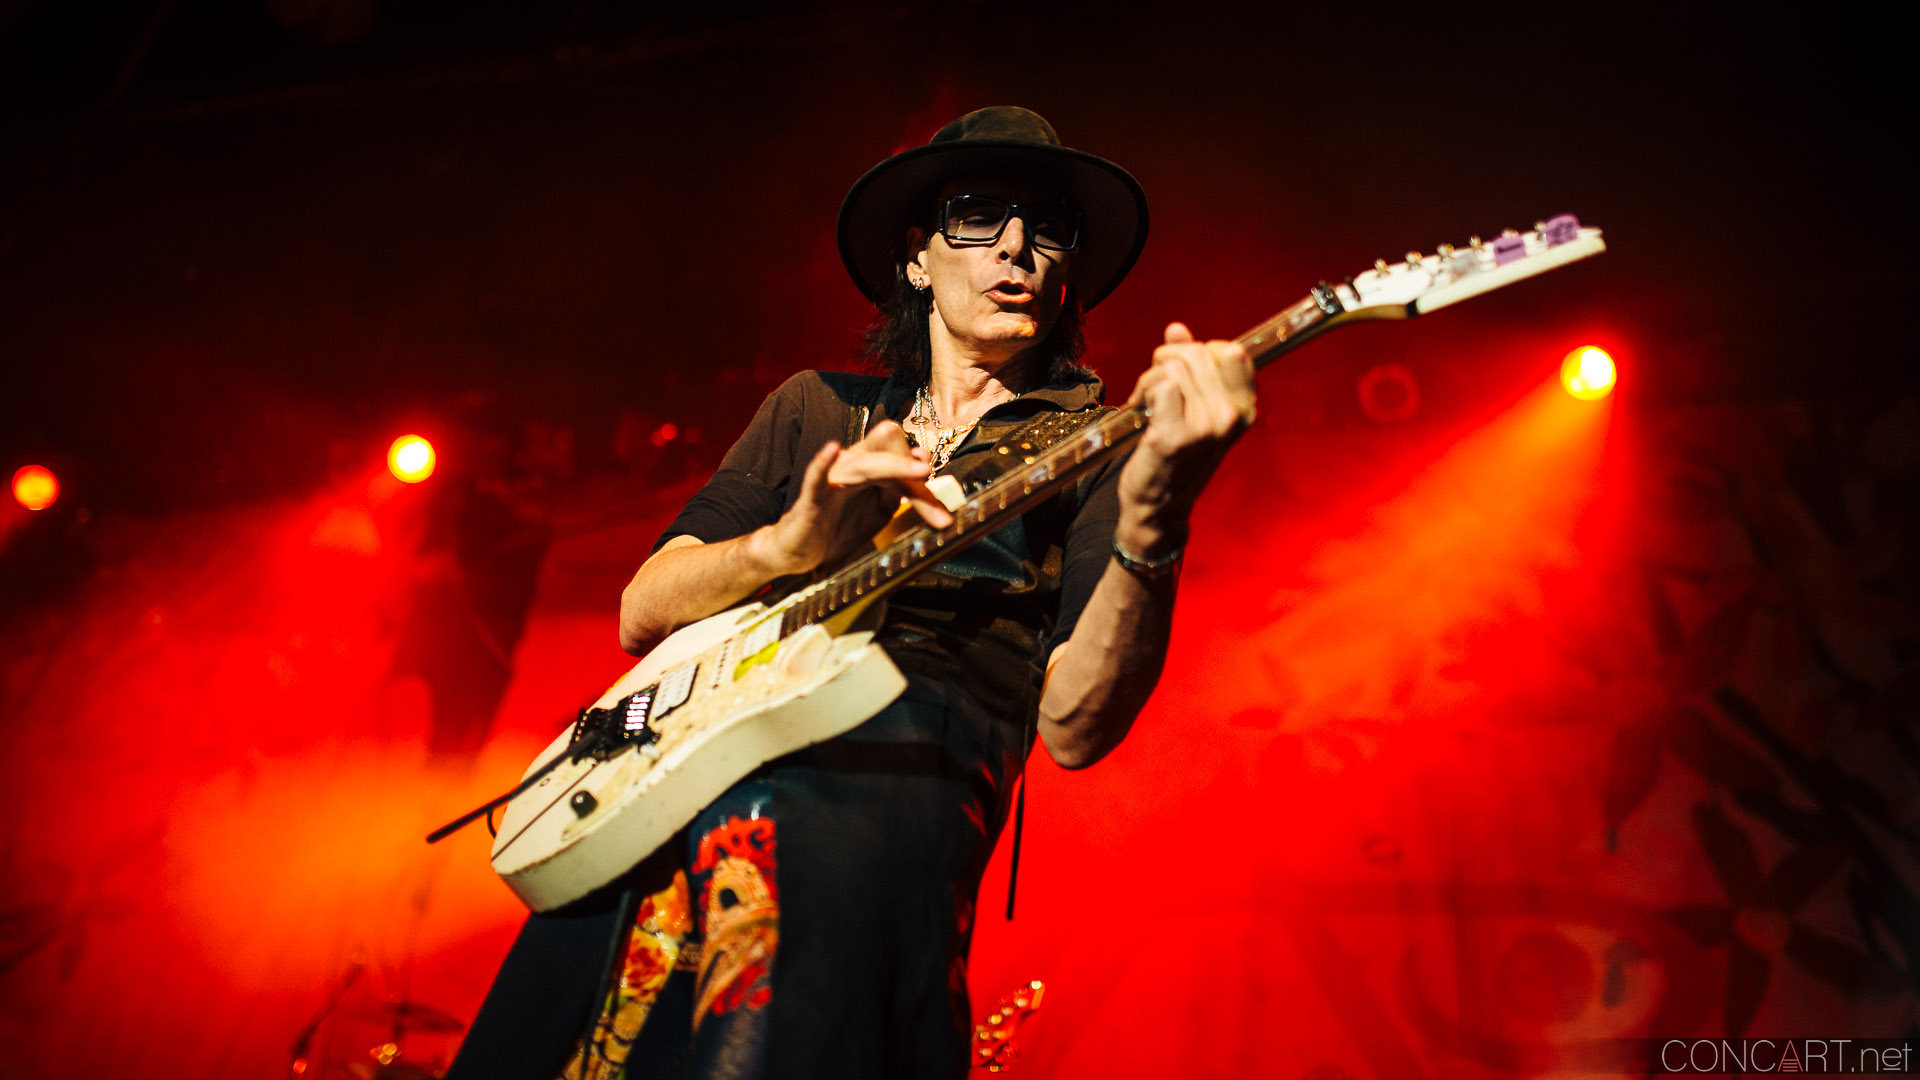 Concert Photos Steve Vai At The Egyptian Room Indianapolis